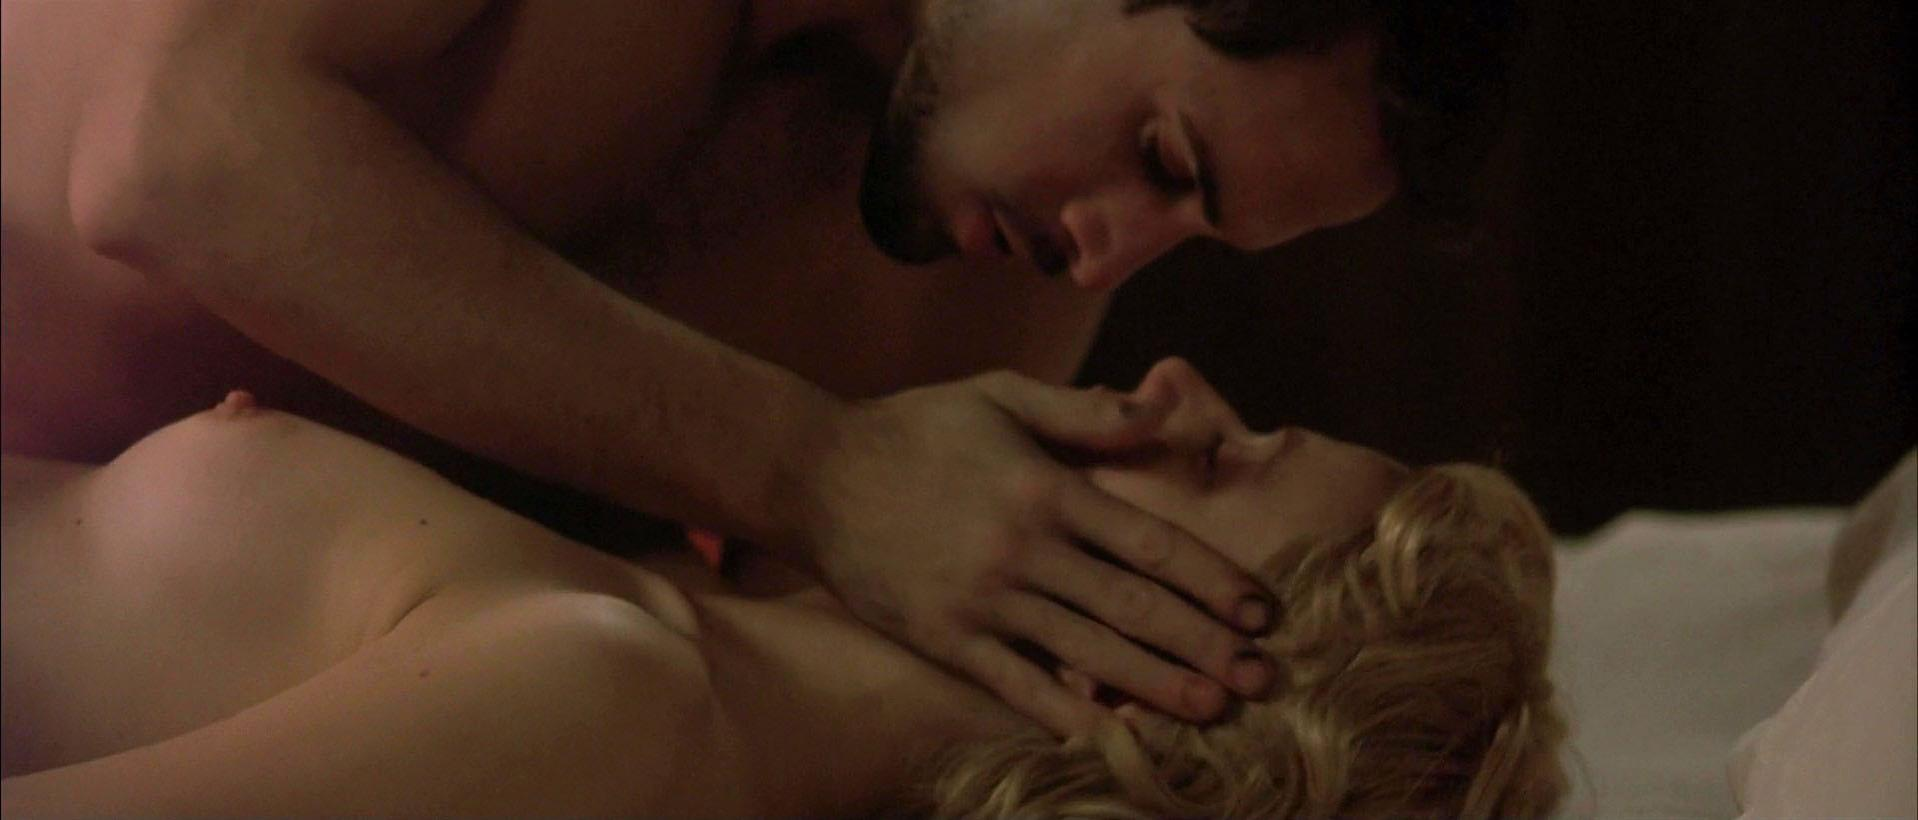 gwyneth paltrow movie sex scene